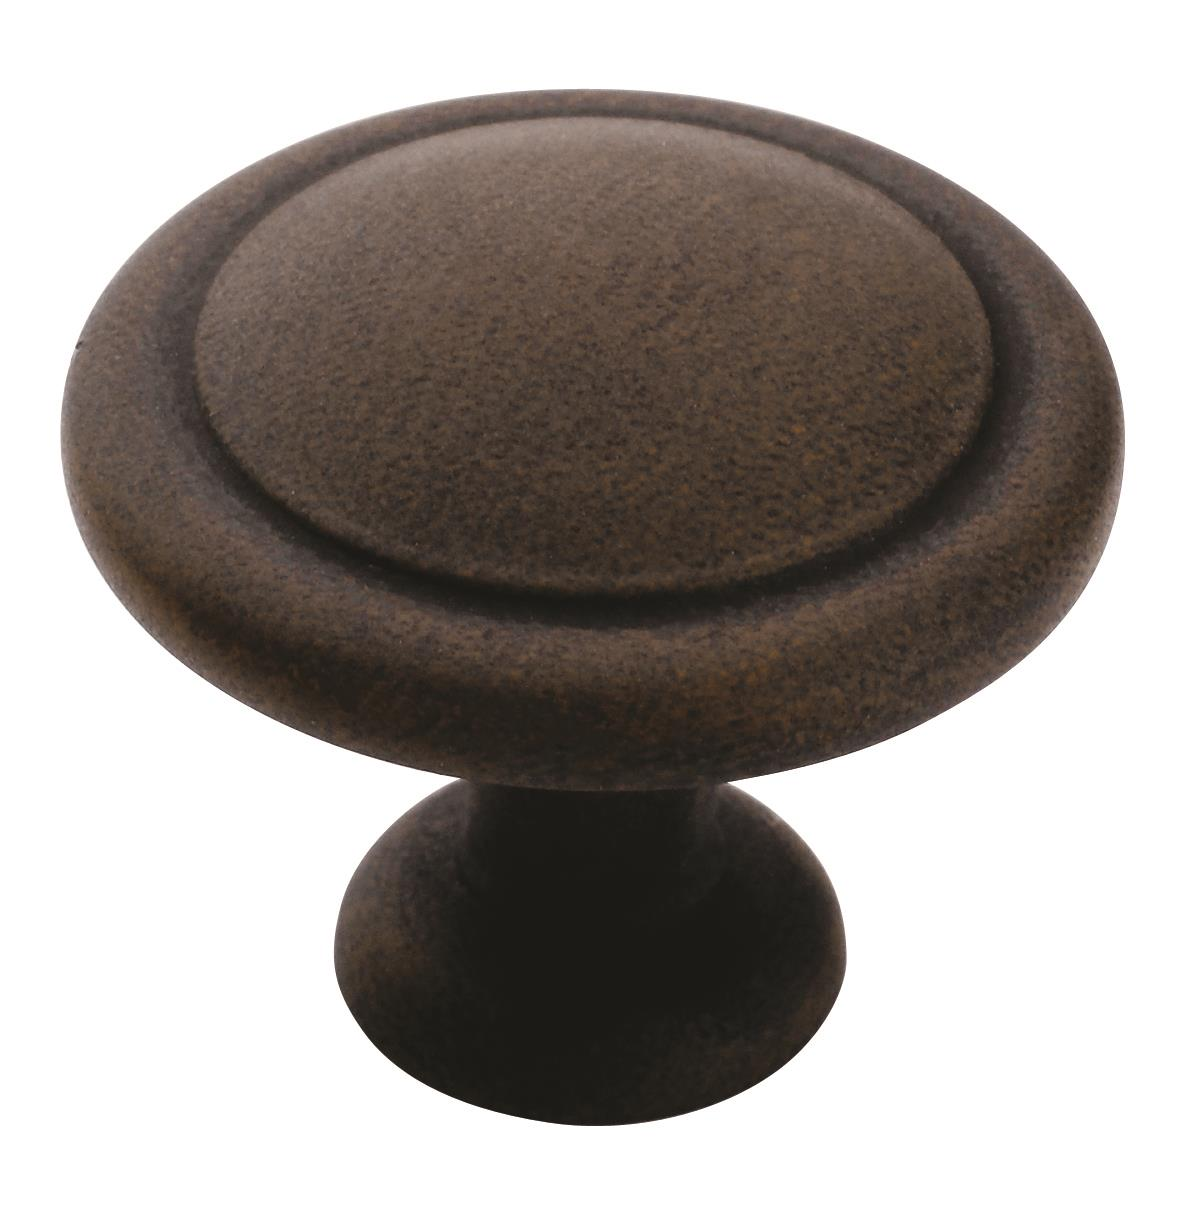 Allison Value 1-1/4 in (32 mm) Diameter Antique Rust Cabinet Knob